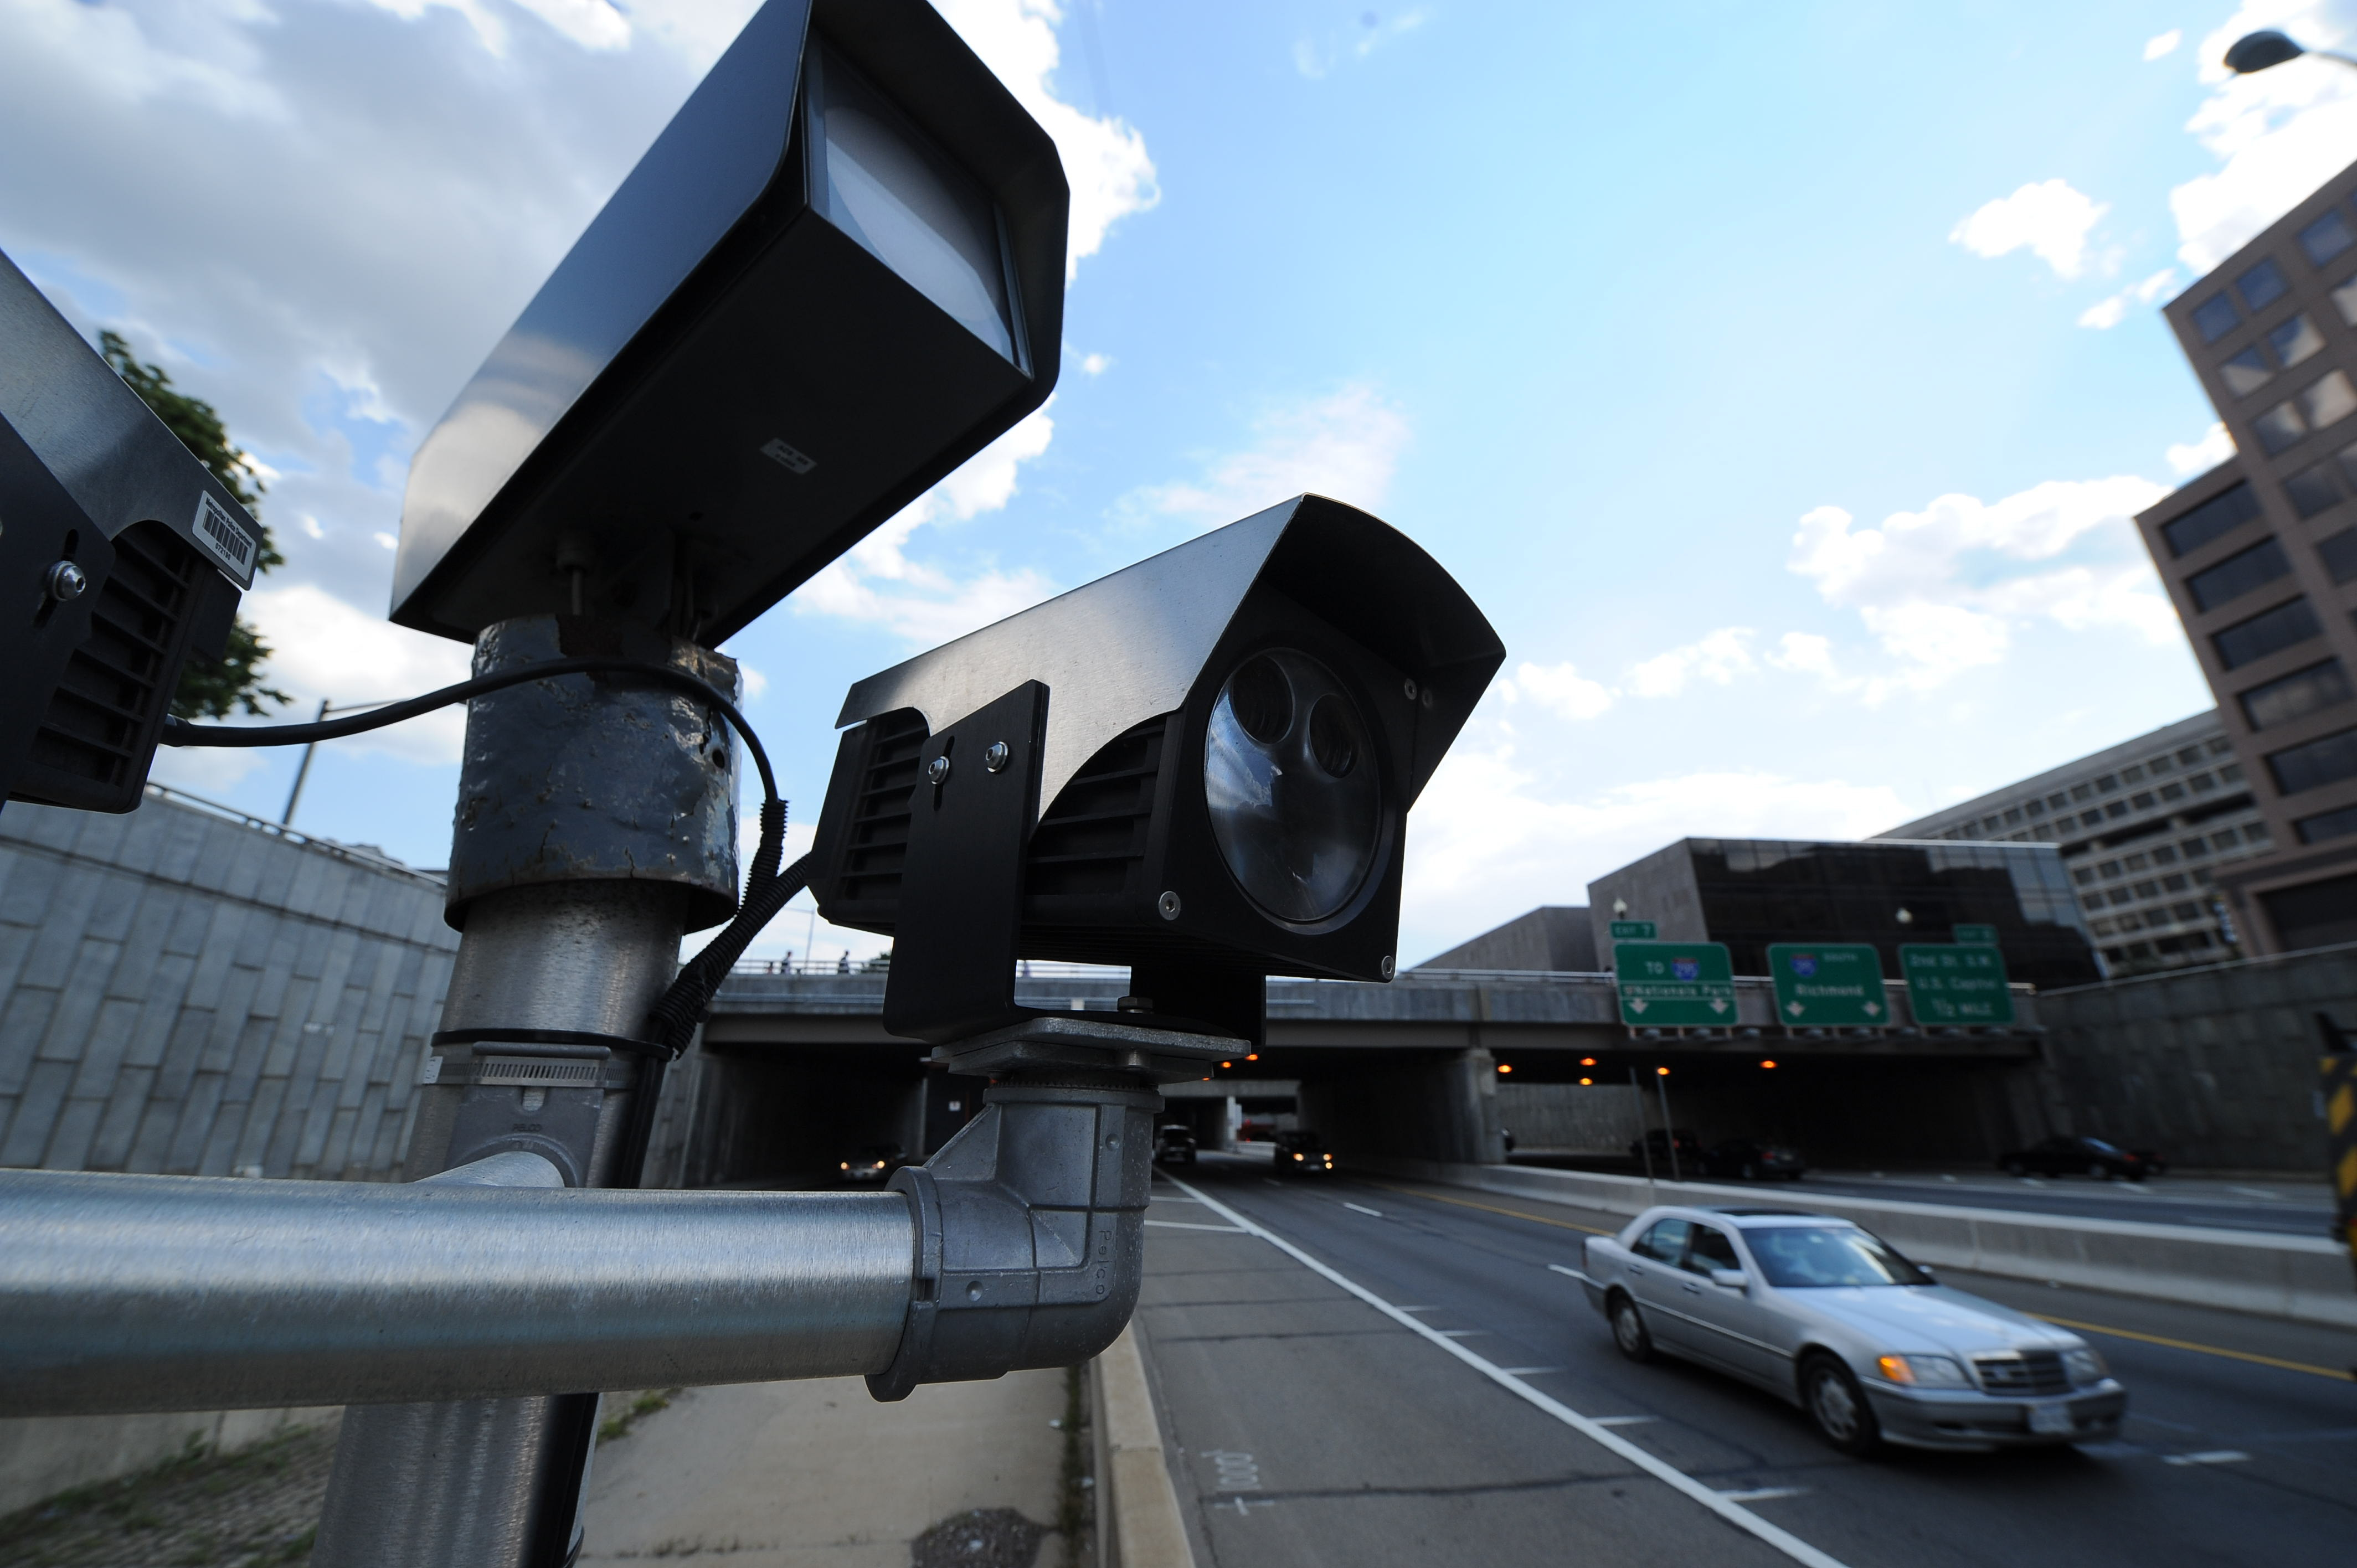 Speed cameras capture motorists on I-395 near 2nd Street NW in Washington, DC on June 7, 2012.